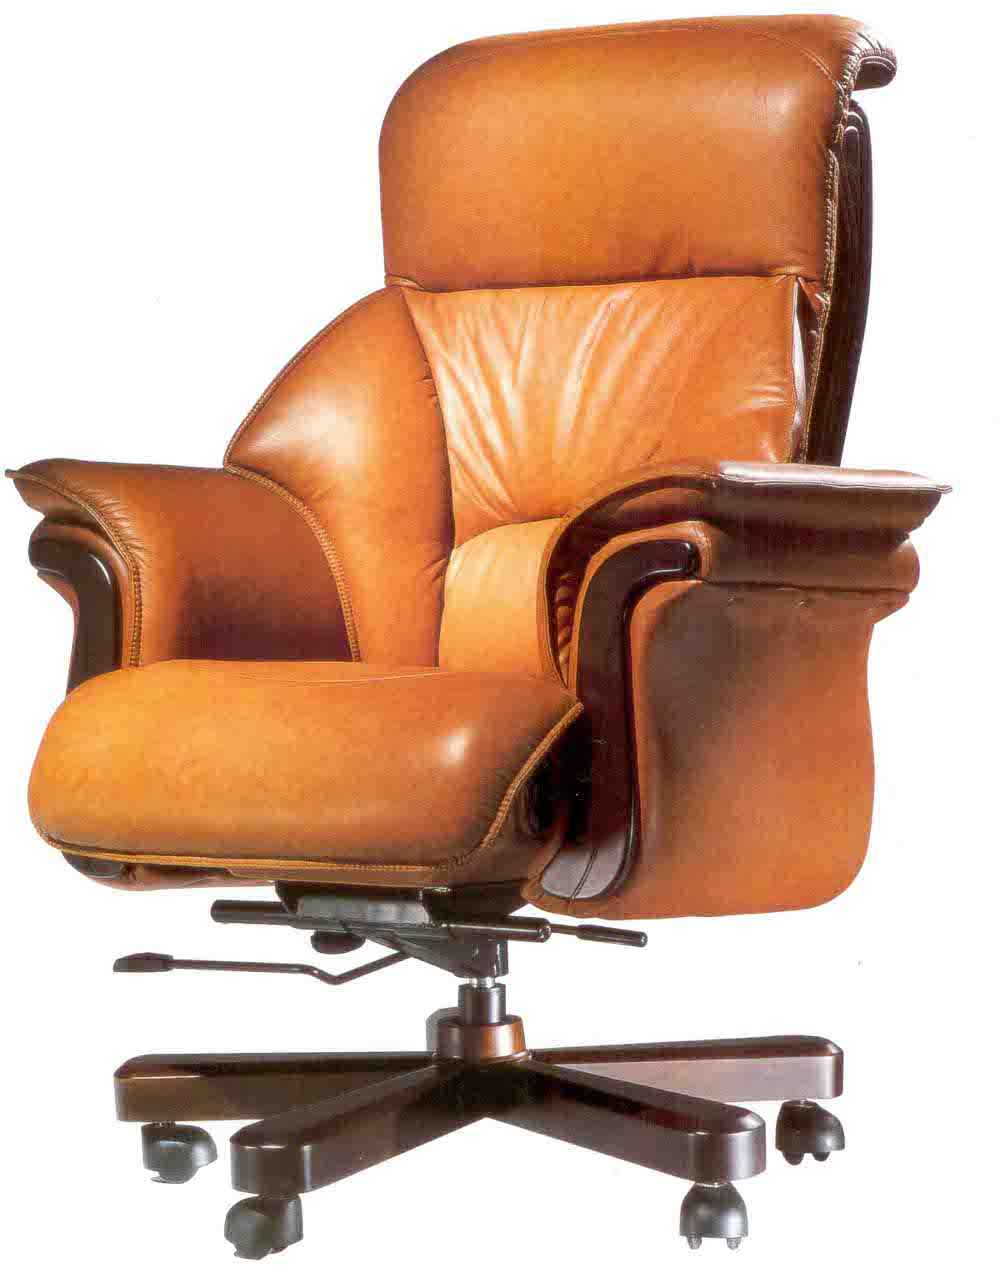 Executive leather office chair office furniture Upscale home office furniture